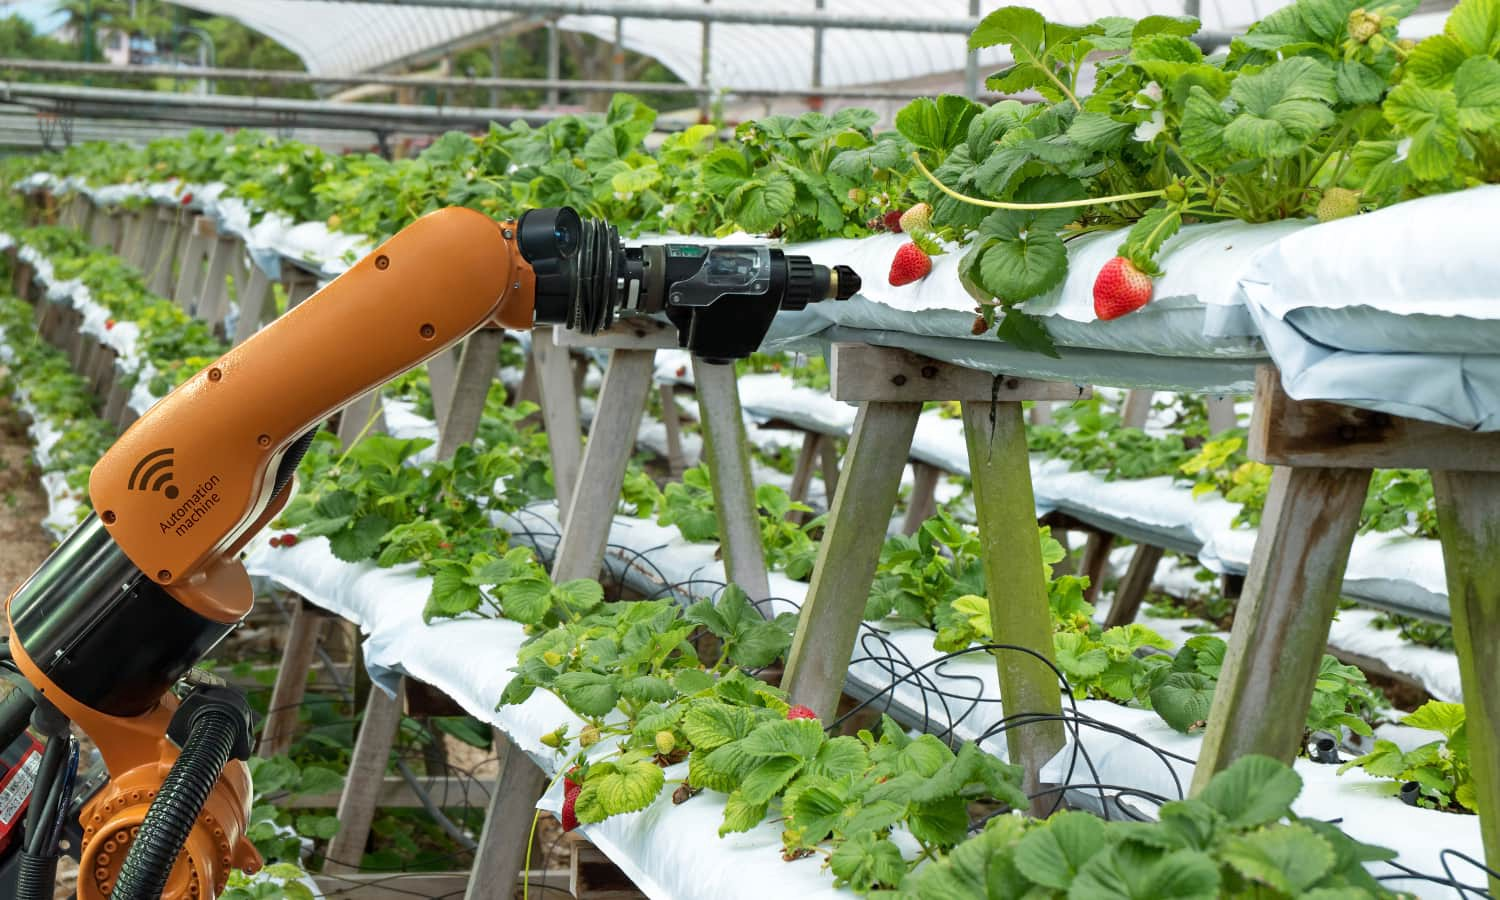 Significance of Training Data in Agricultural Sector